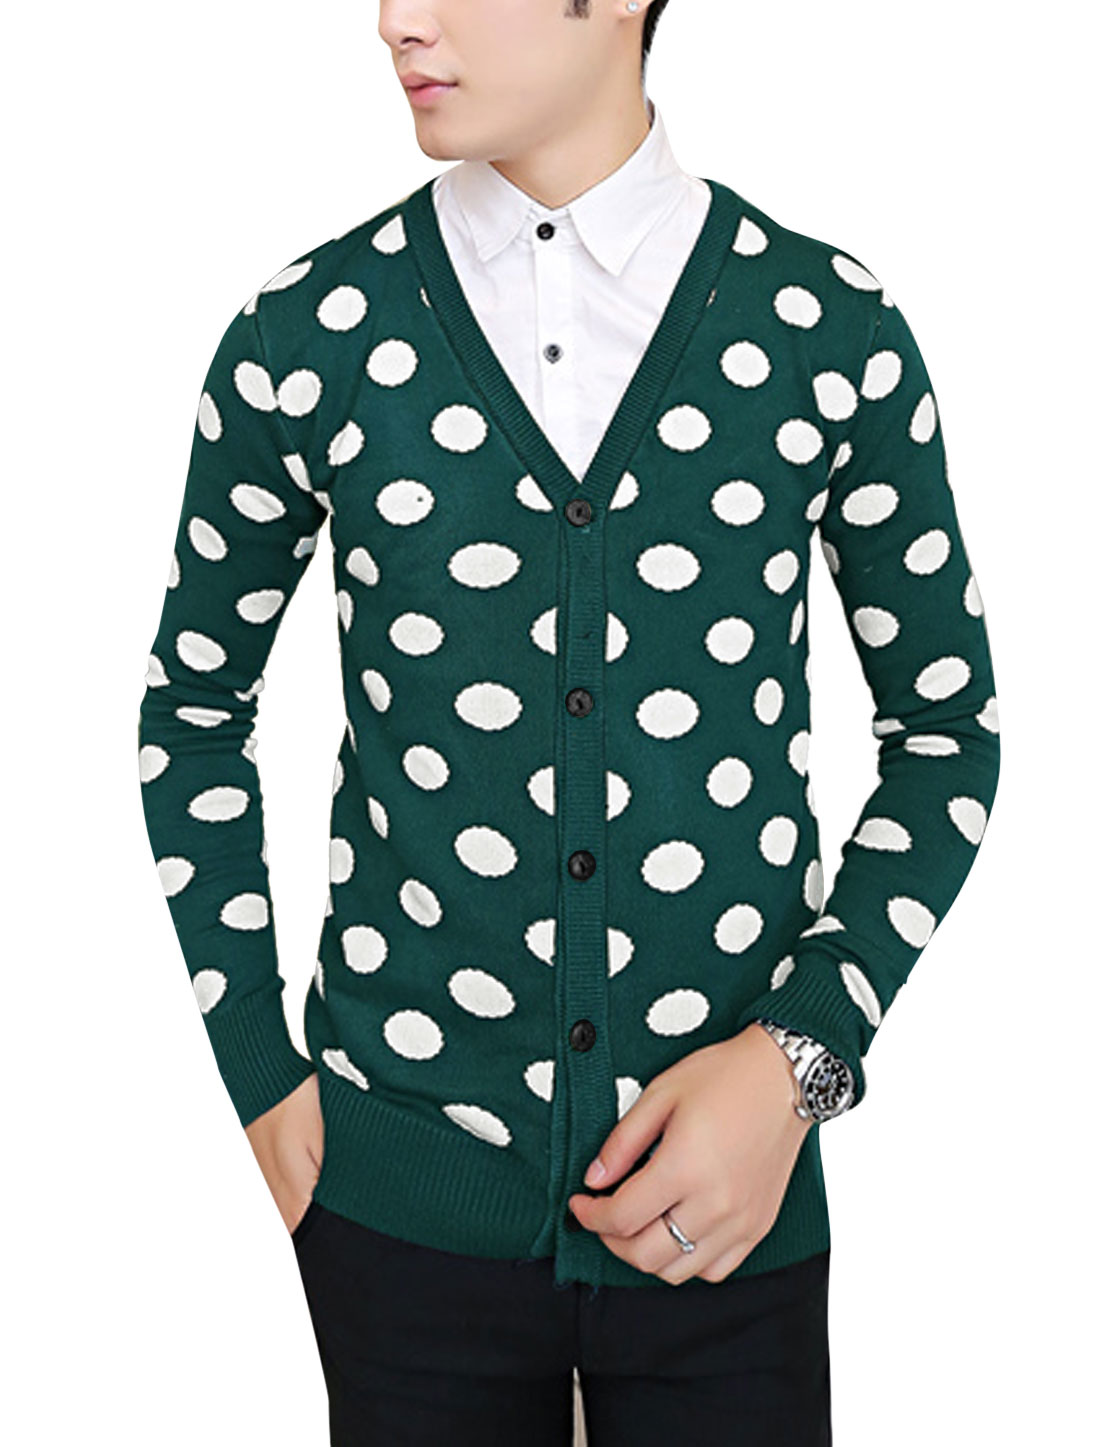 Leisure Soft V Neck Dots Pattern Cardigan for Men Dusty Green S